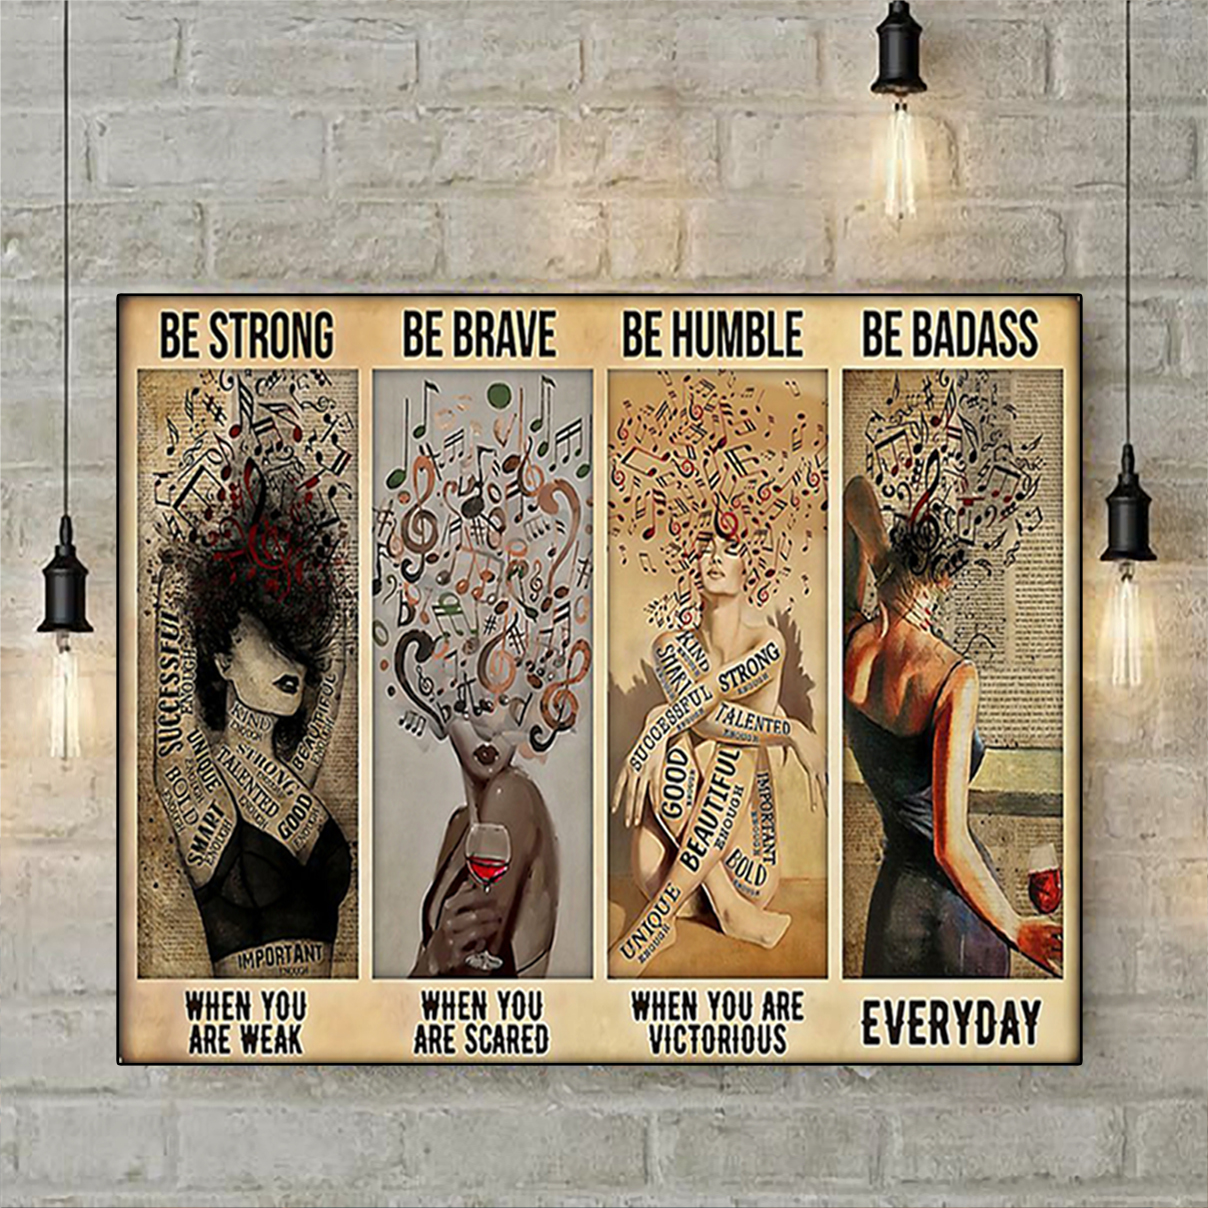 Girl and music be strong be brave be humble be badass poster A2